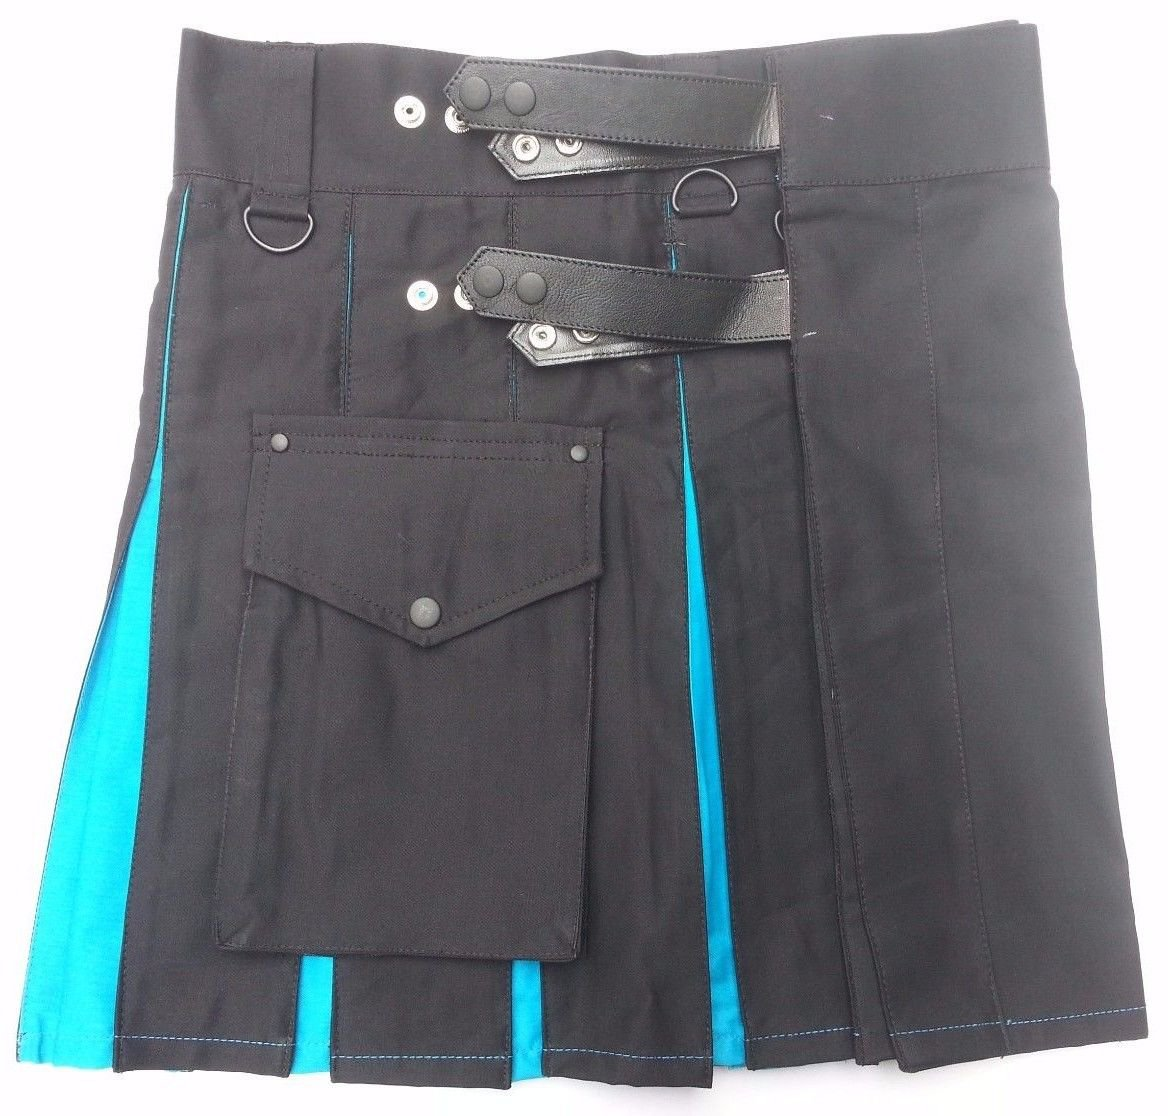 "36"" Ladies TDK Black & Blue Cotton Hybrid Kilt, Leather Straps Tactical Duty Kilt Black/Blue Cotton"